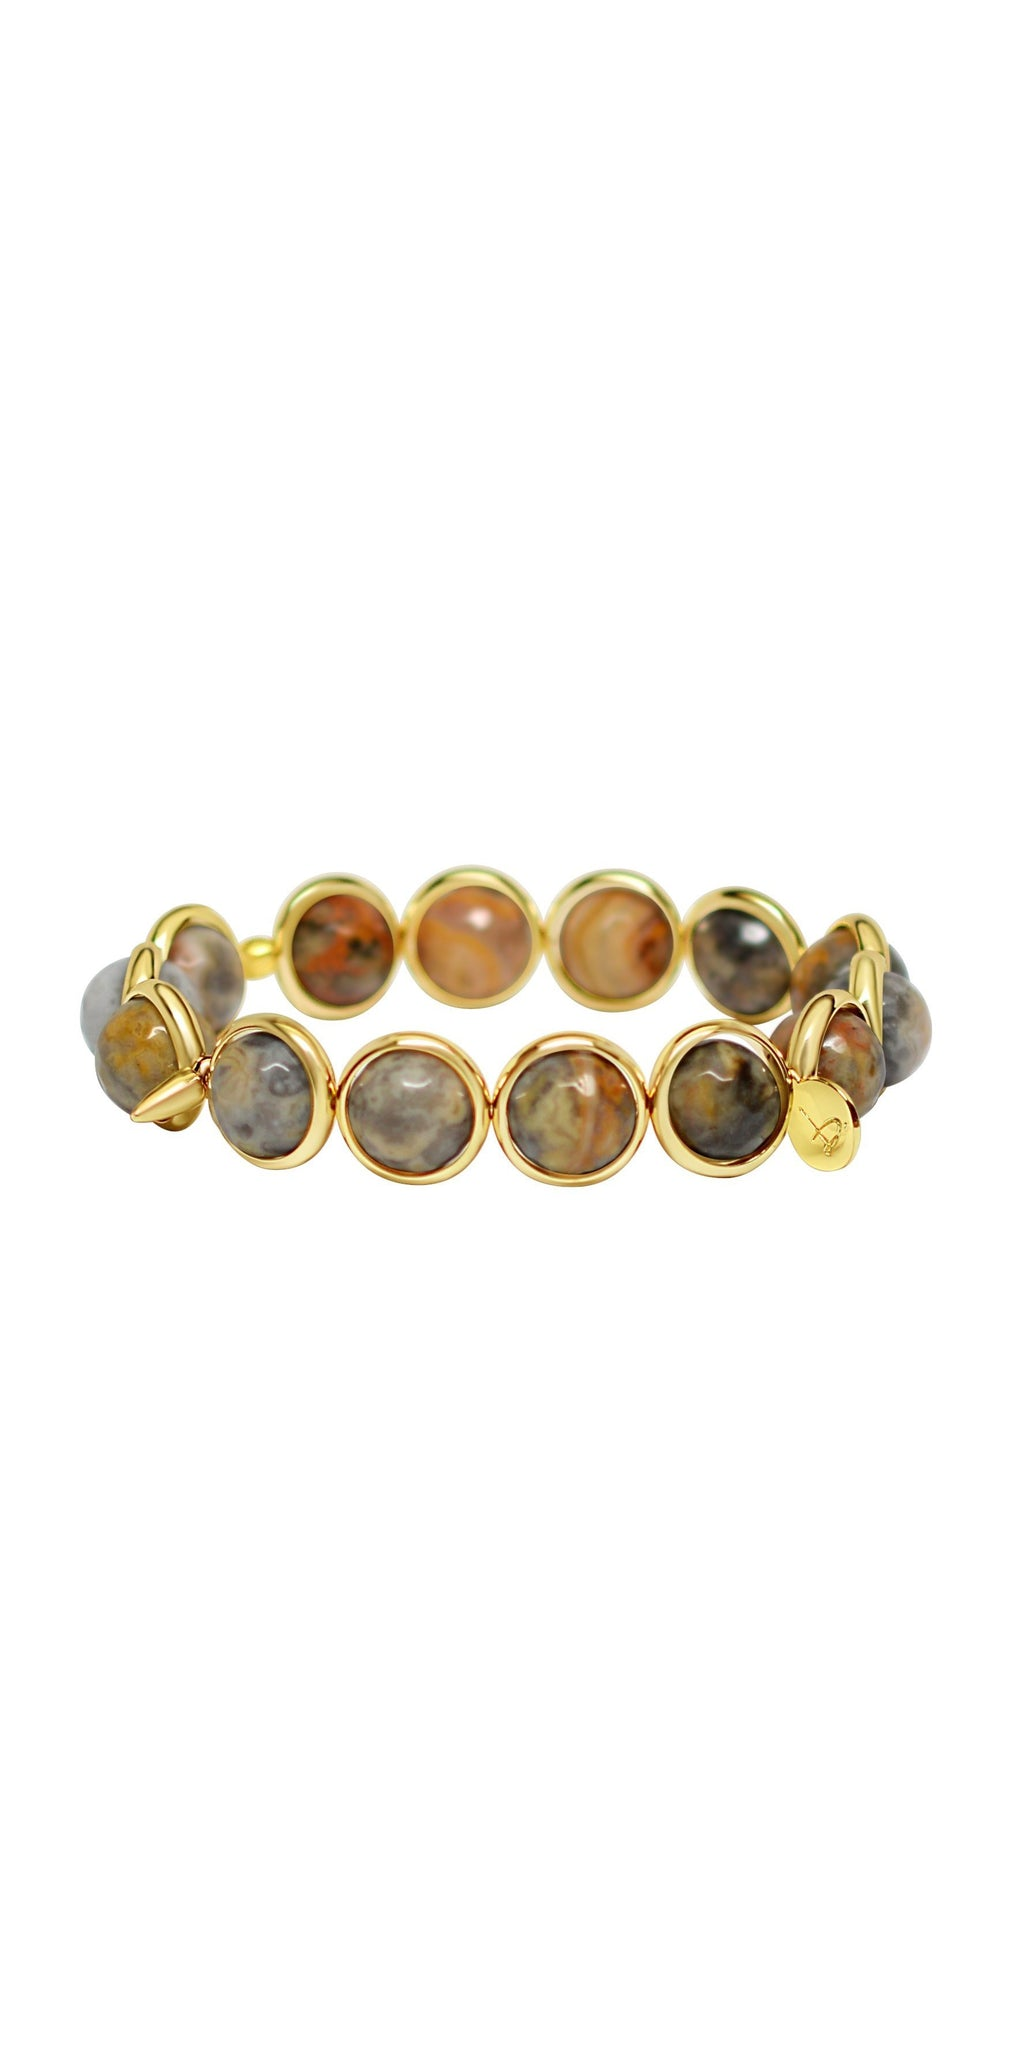 Skye Eye Jasper Bead Bracelet - Gold-Sea Biscuit Del Mar